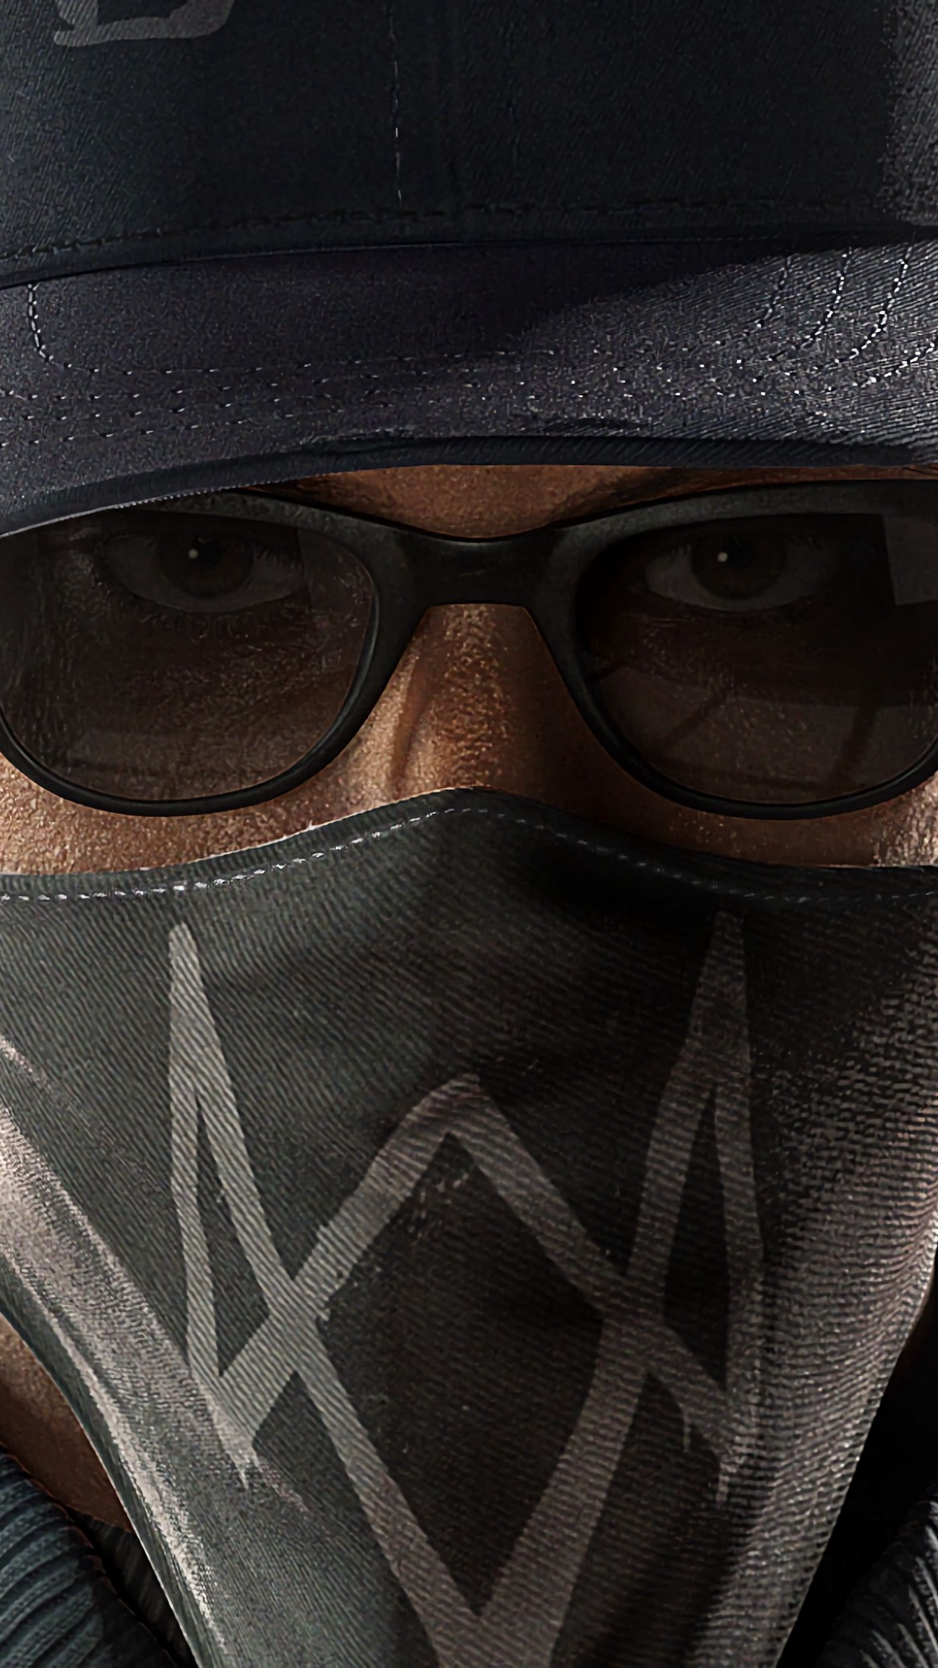 Wallpaper Watch Dogs 2, Marcus Holloway, Face - Watch Dogs 2 Mask , HD Wallpaper & Backgrounds